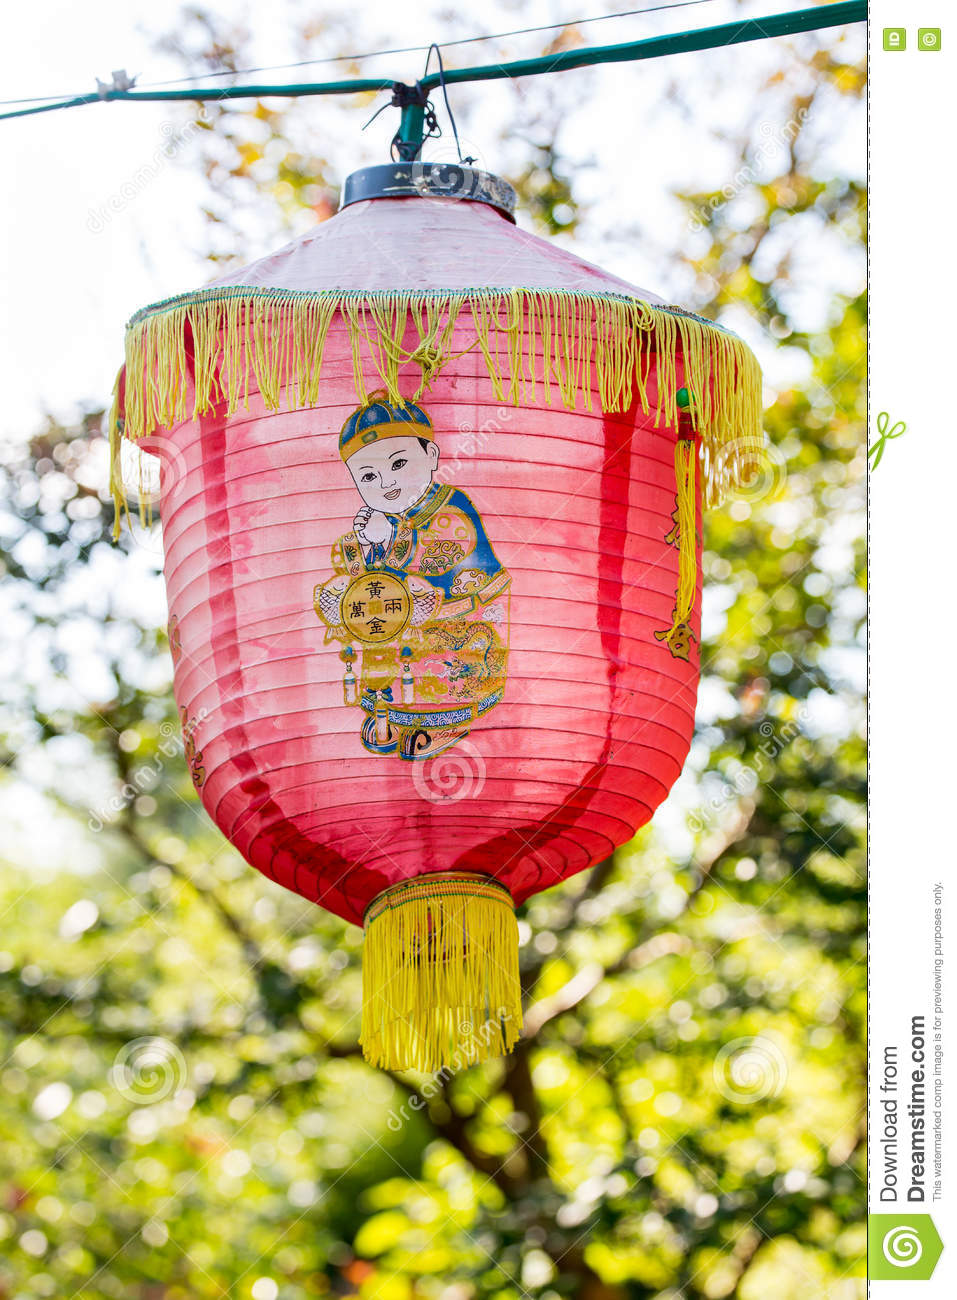 Traditionele Chinese lantaarn